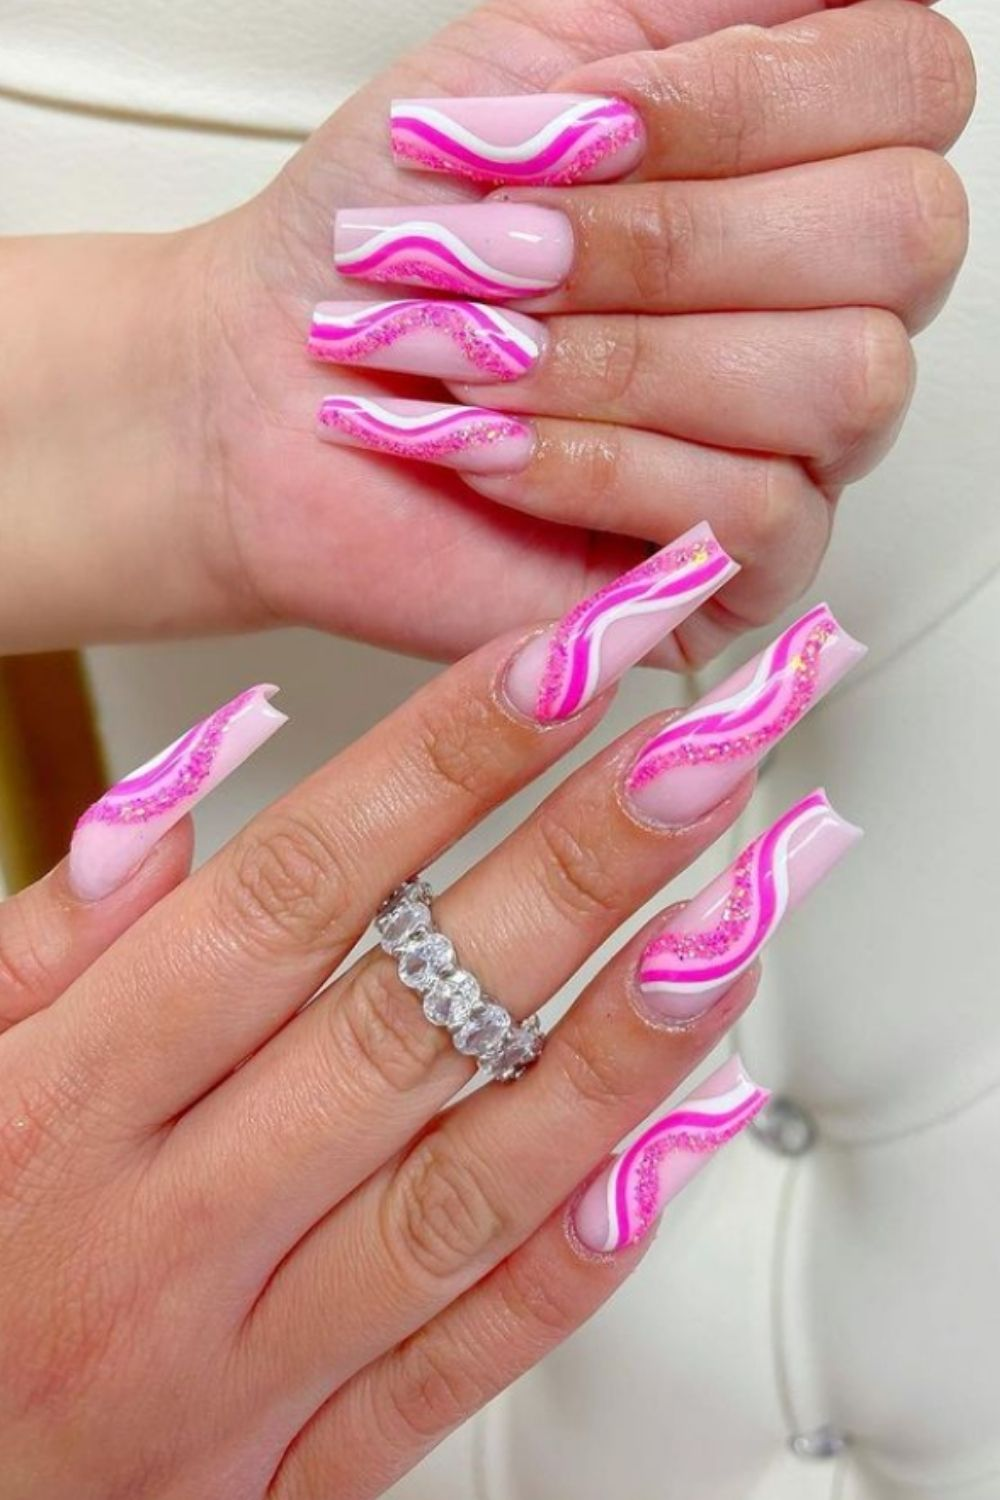 47 Perfect Coffin Acrylic Nails Design in Summer Nail Art 2021